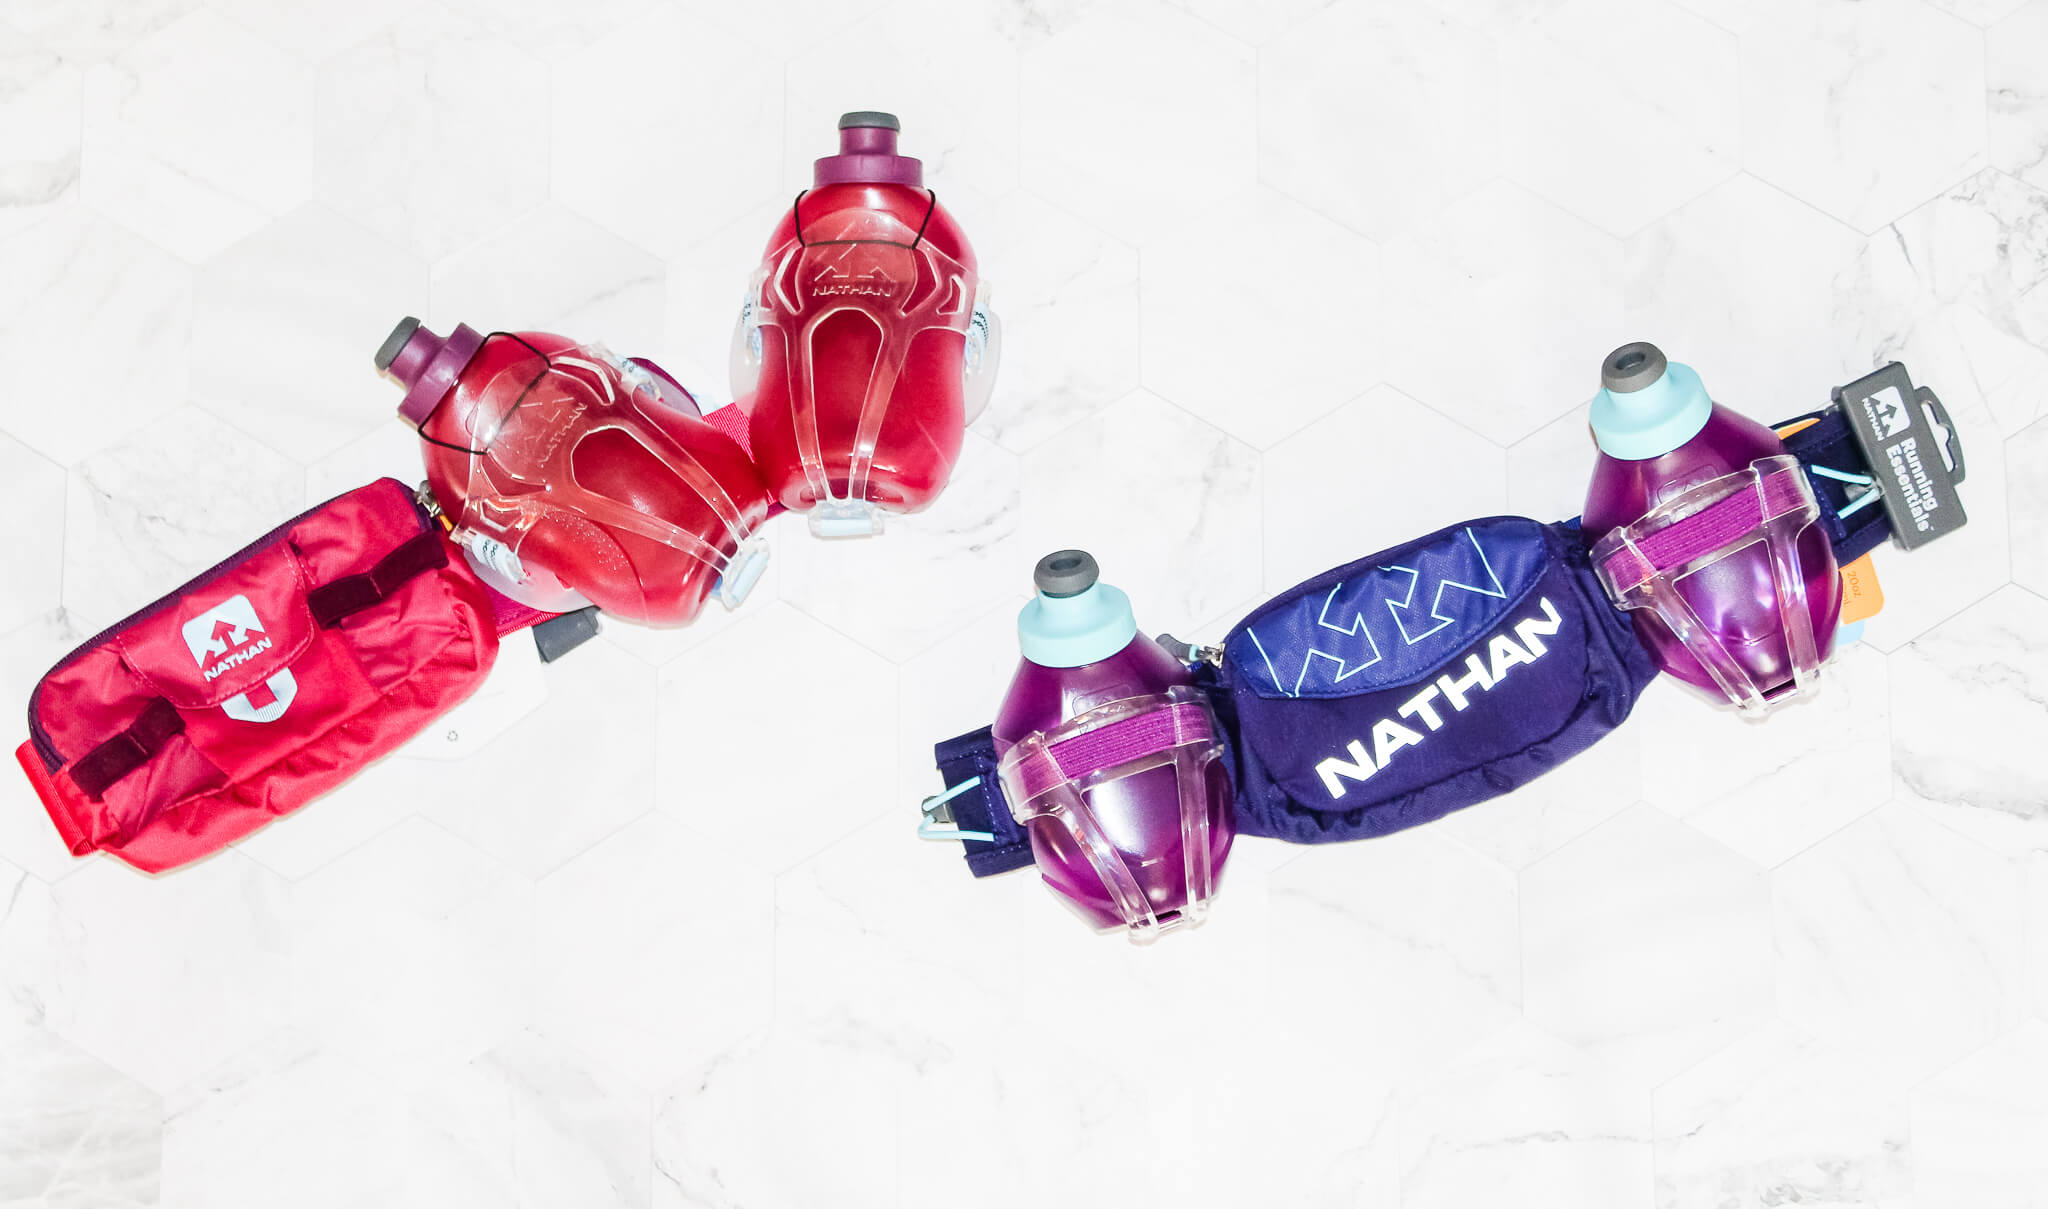 Nathan Trail Mix Plus vs Switchblade: Which Is The Better Hydration Belt?